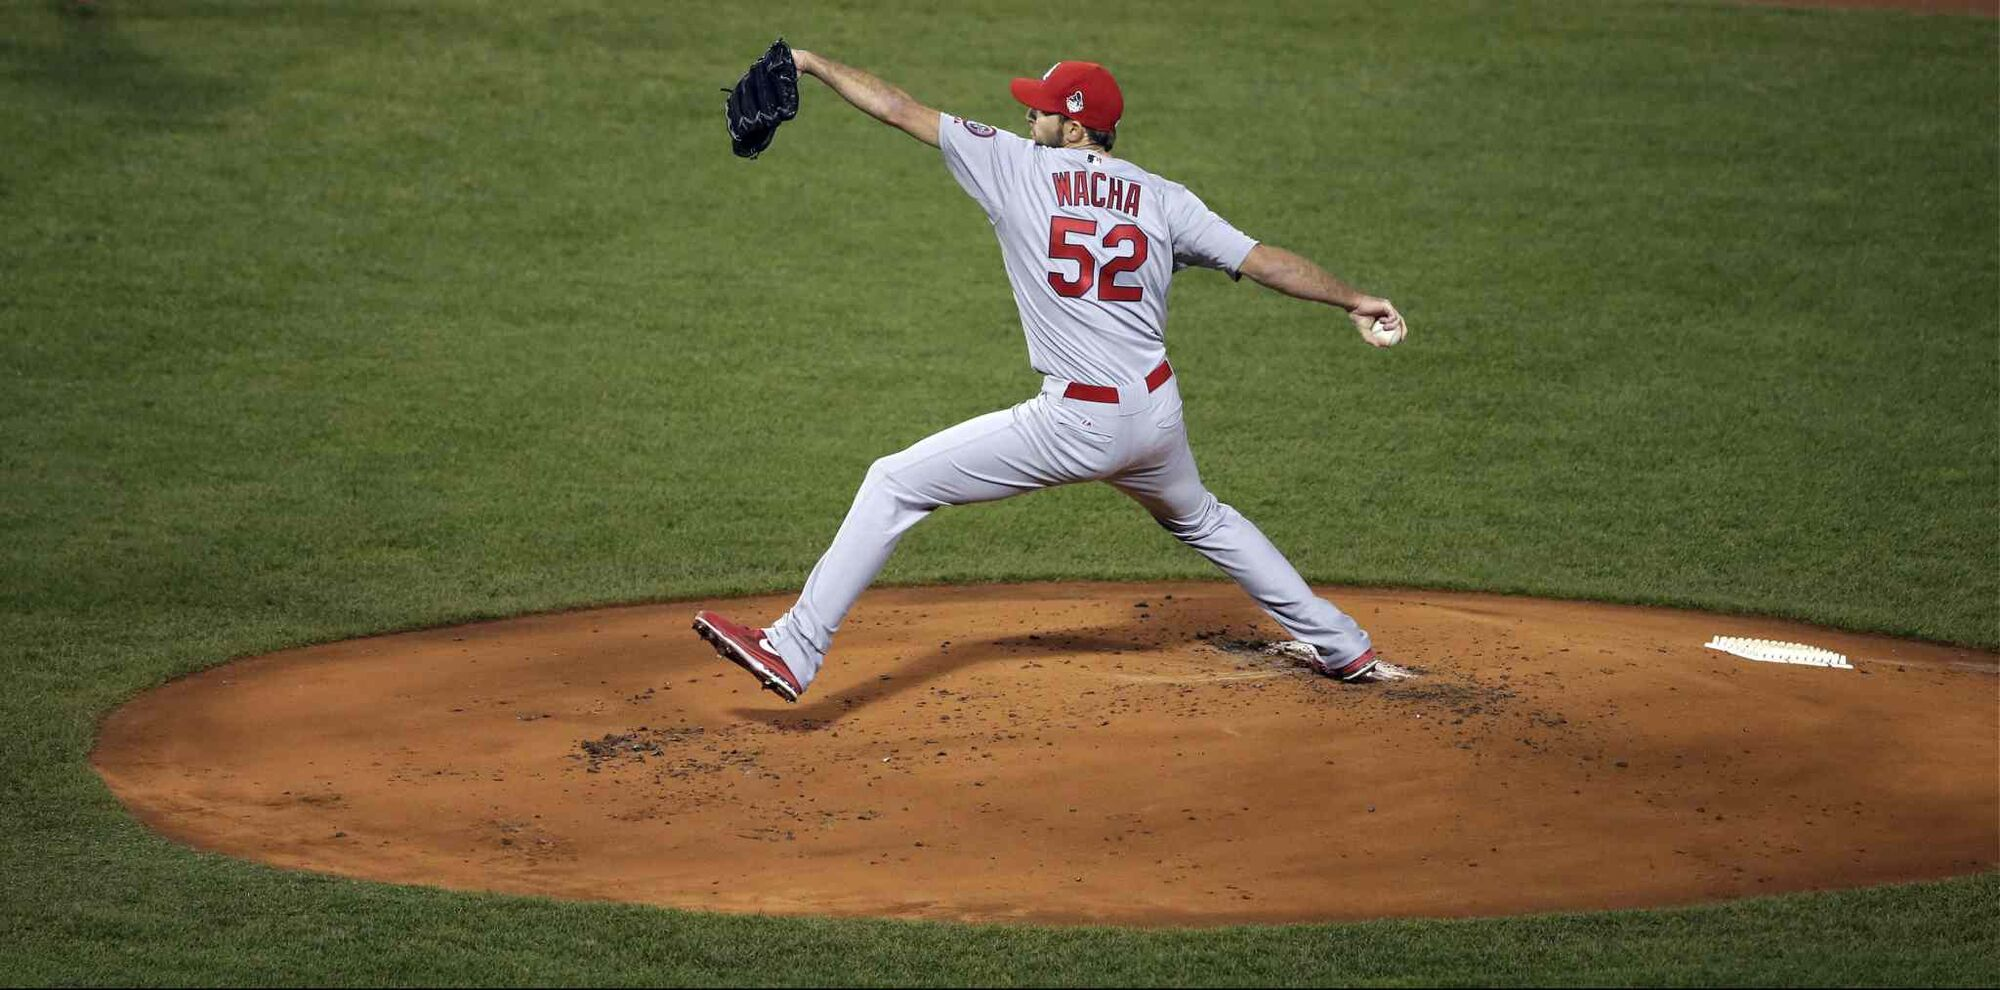 St. Louis Cardinals starting pitcher Michael Wacha throws during the first inning.